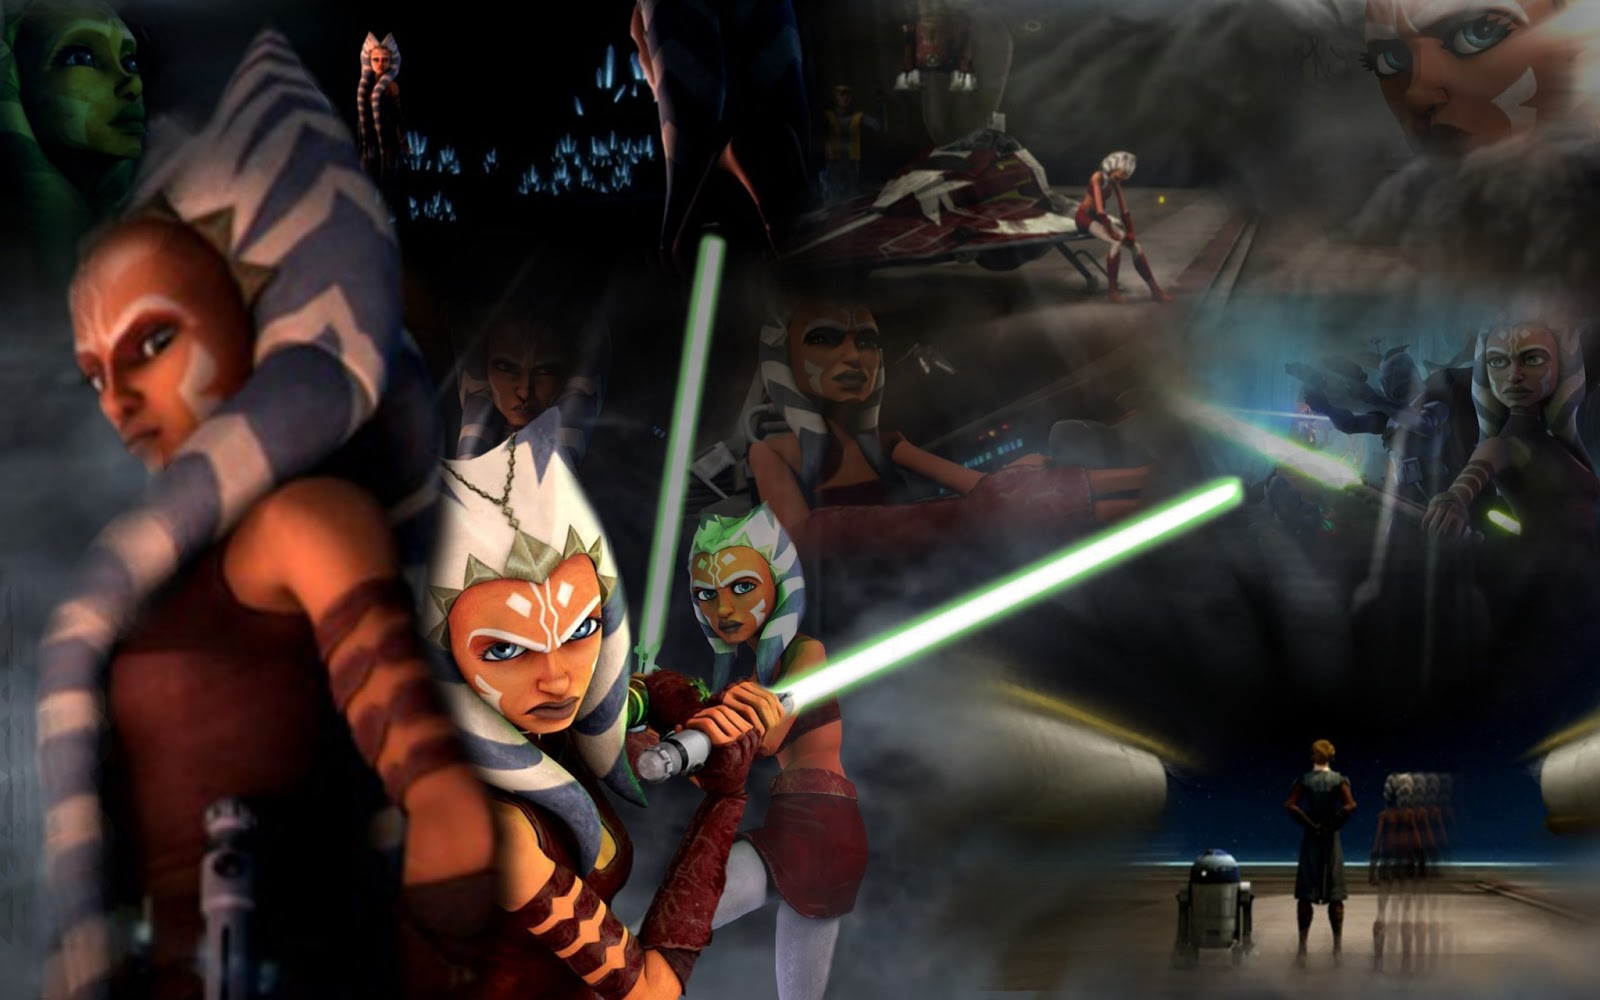 Well... We've come to that point. The long awaited big arc for Ahsoka.